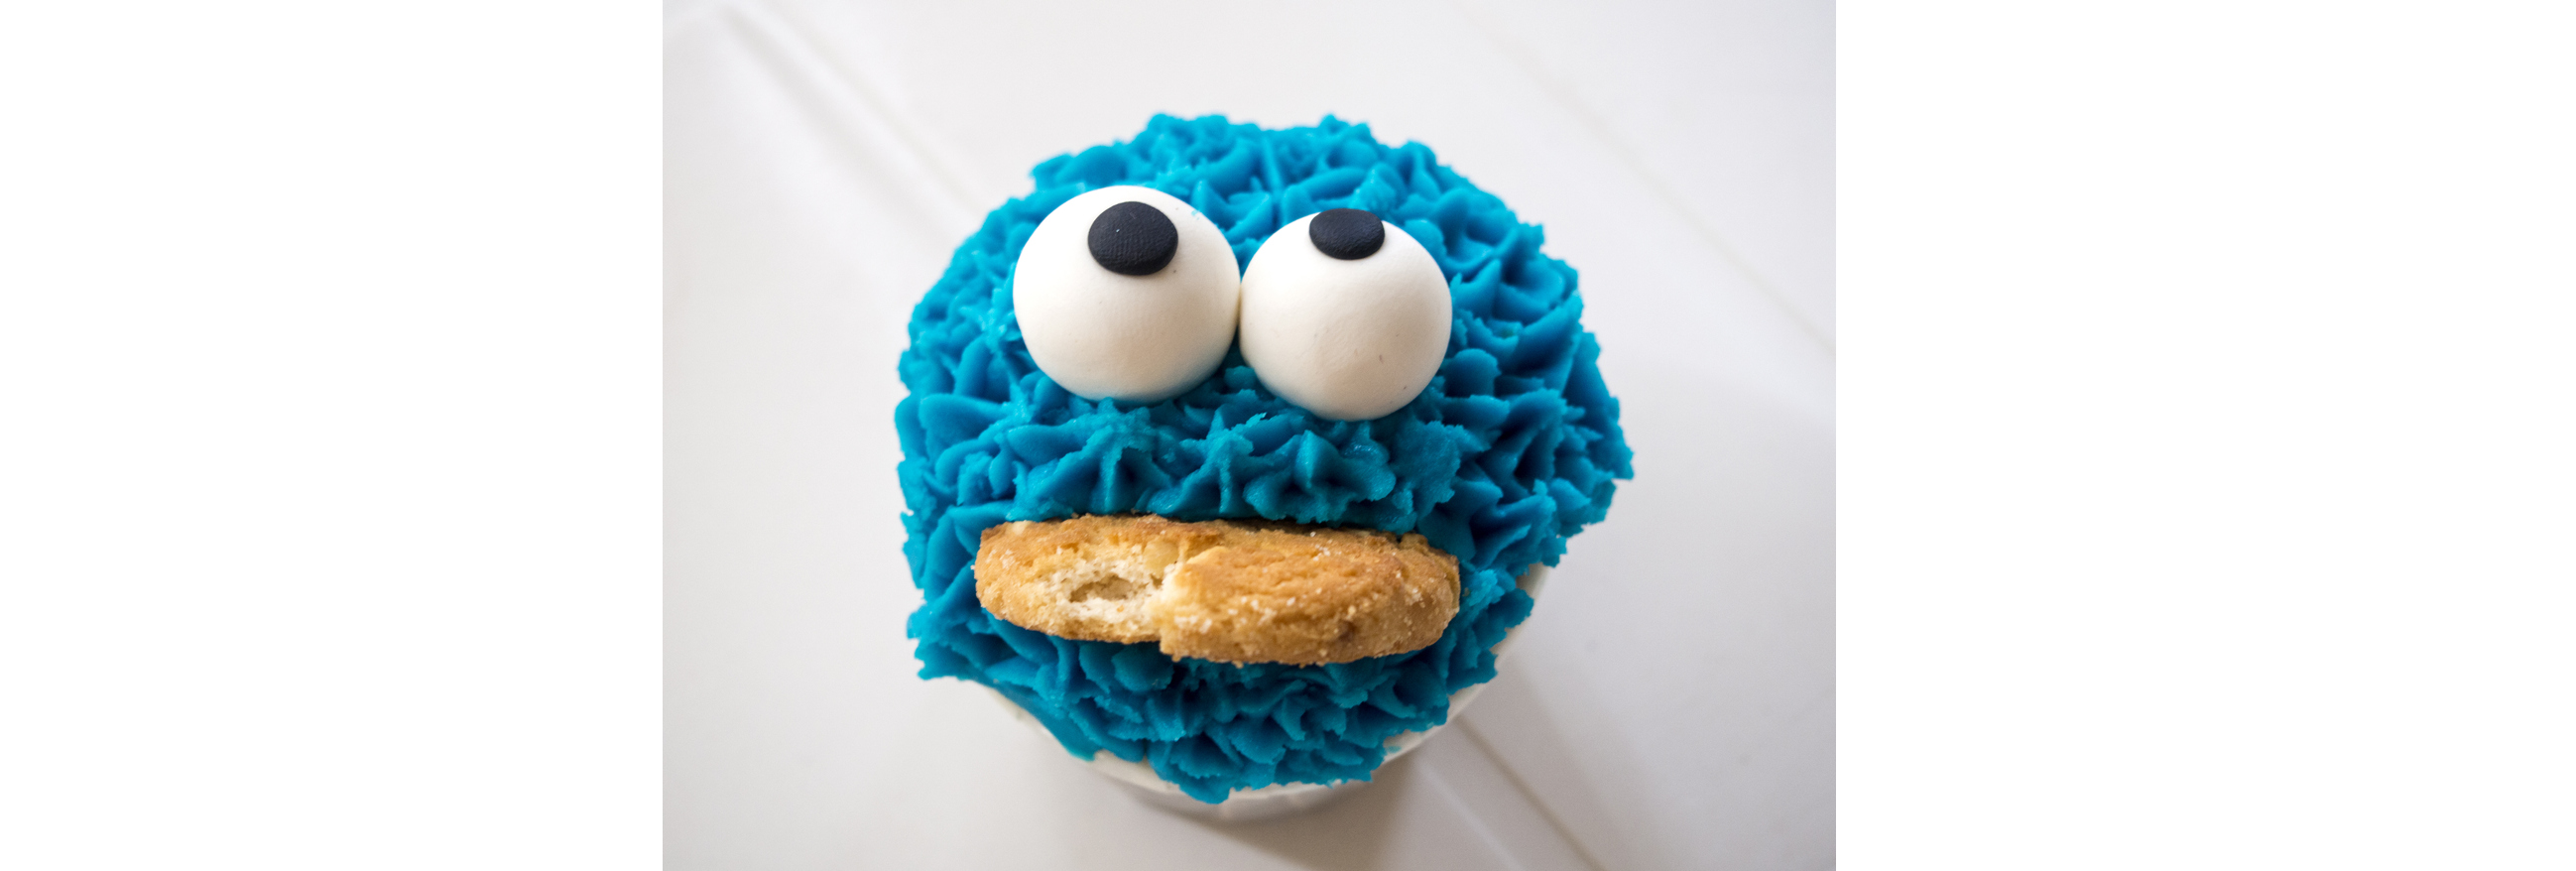 Taming The Cookie Monster